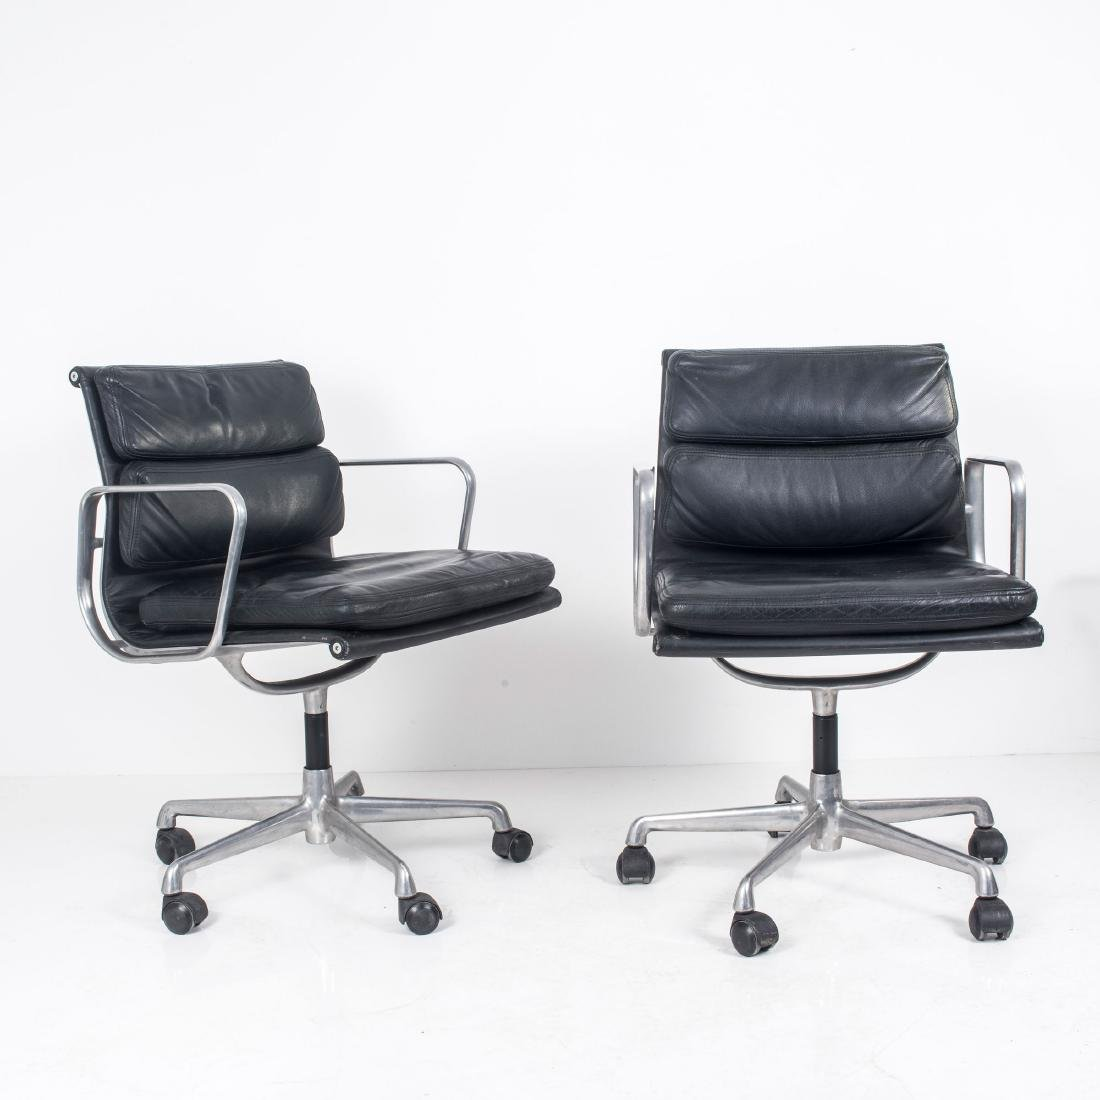 Two 'Soft Pad Group' desk chairs, 1969 - 2